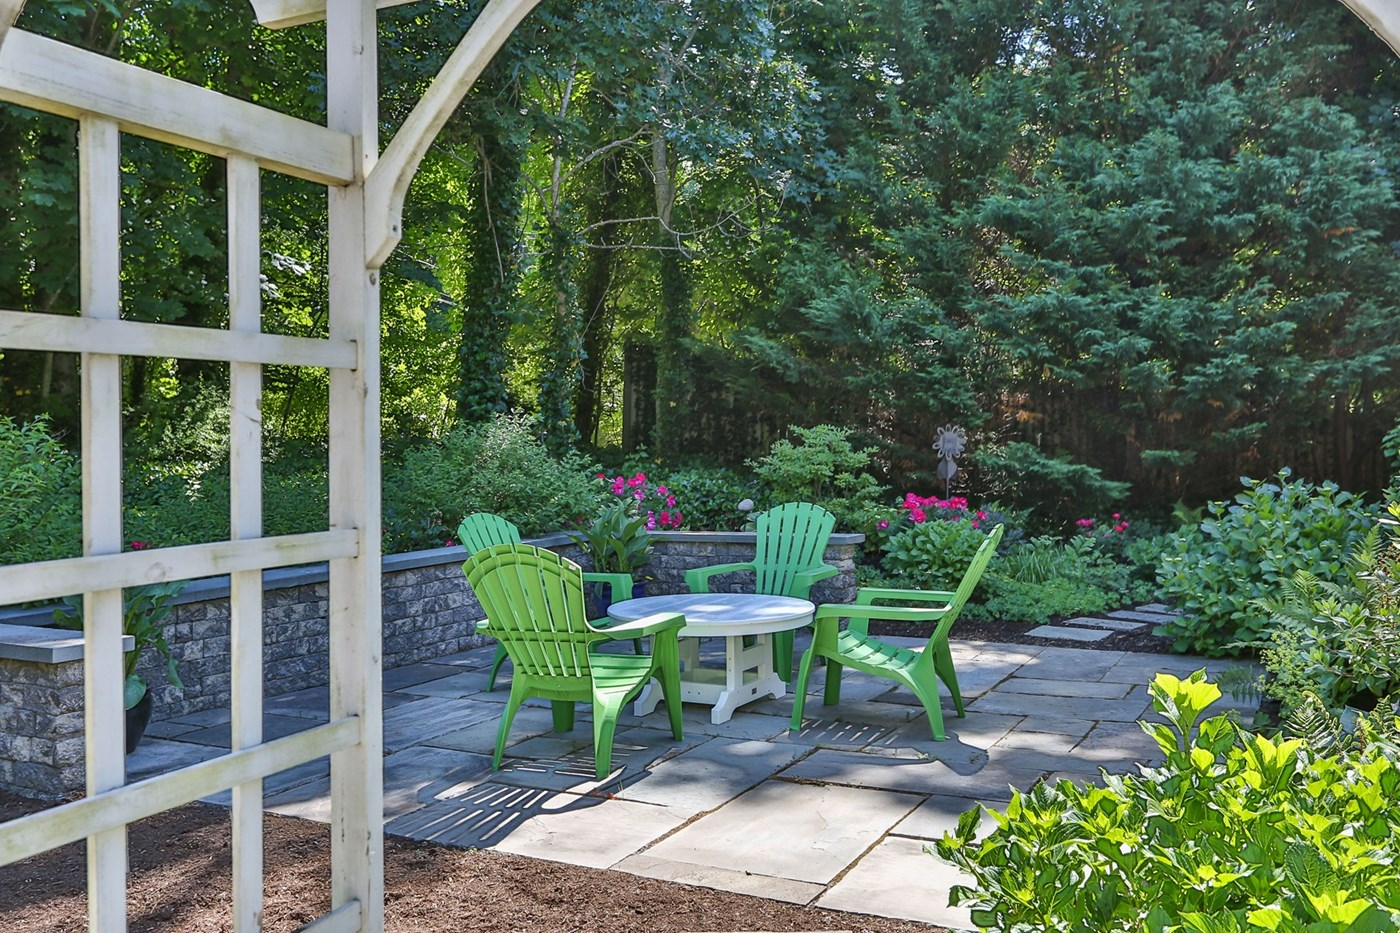 Serene Private Patio Surrounded By Gardens And Nature.